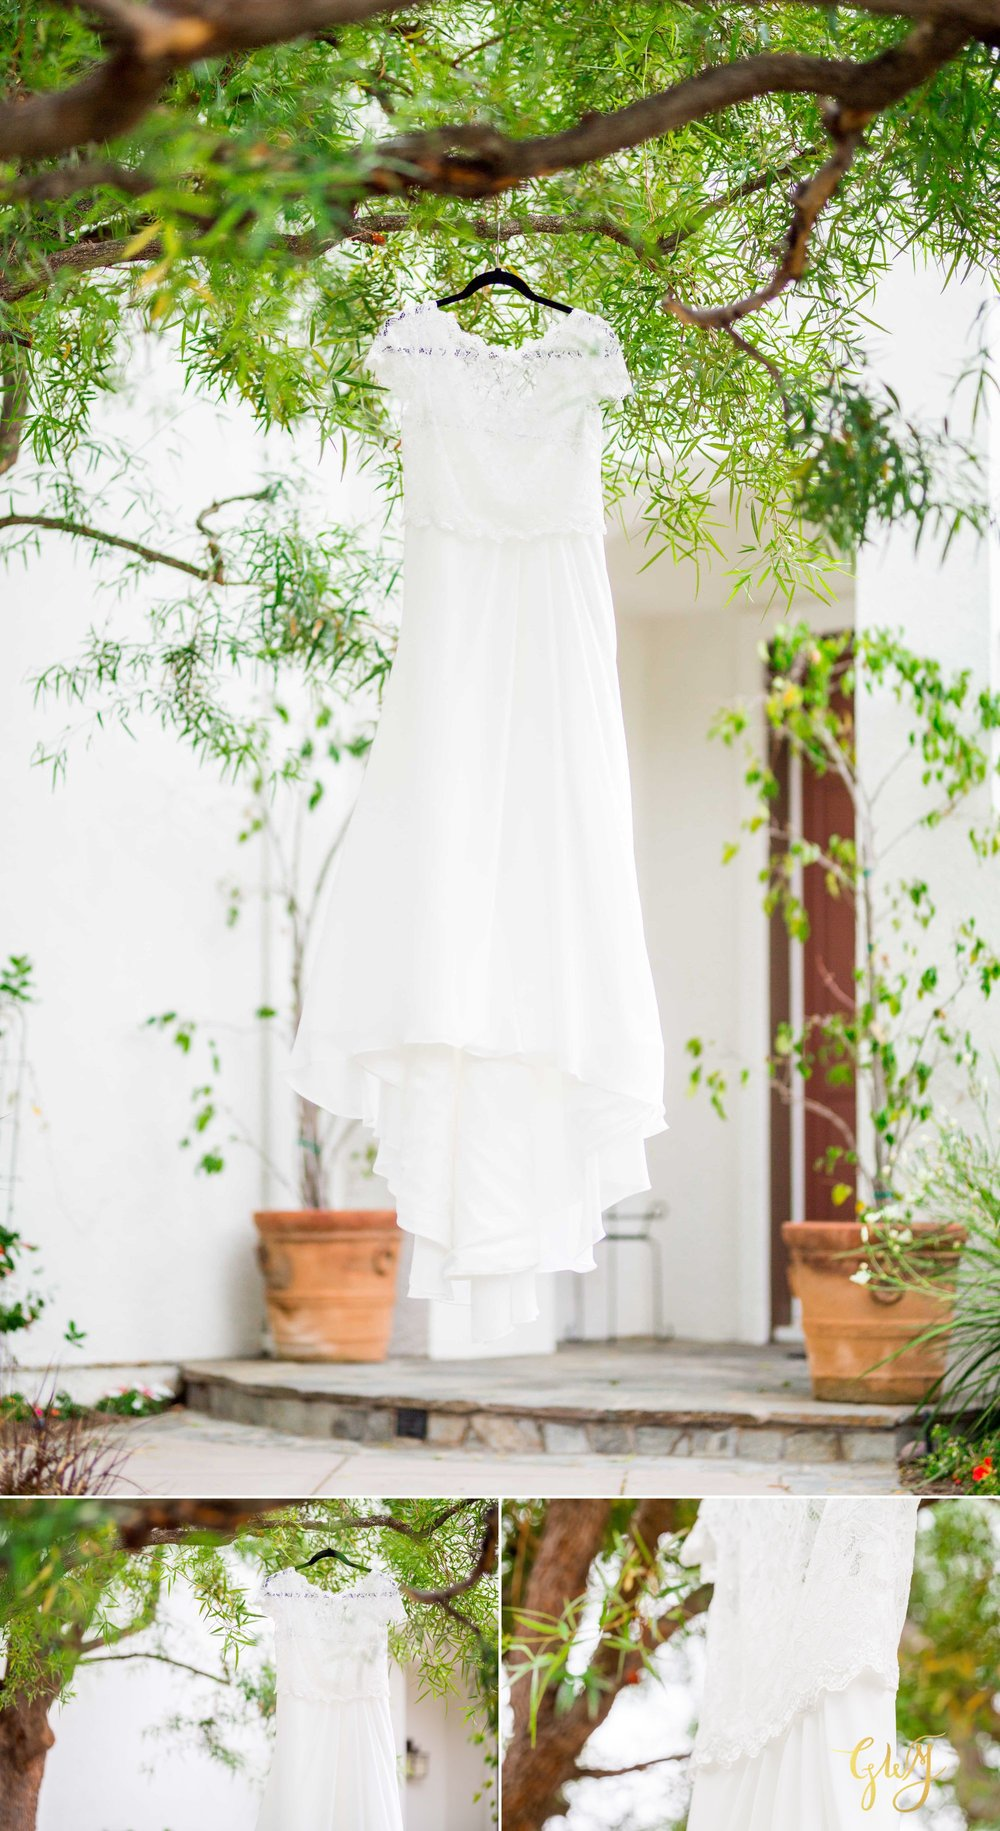 Jose + Sarah Norman P Murray Mission Viejo Summer Wedding by Glass Woods Media 2.jpg